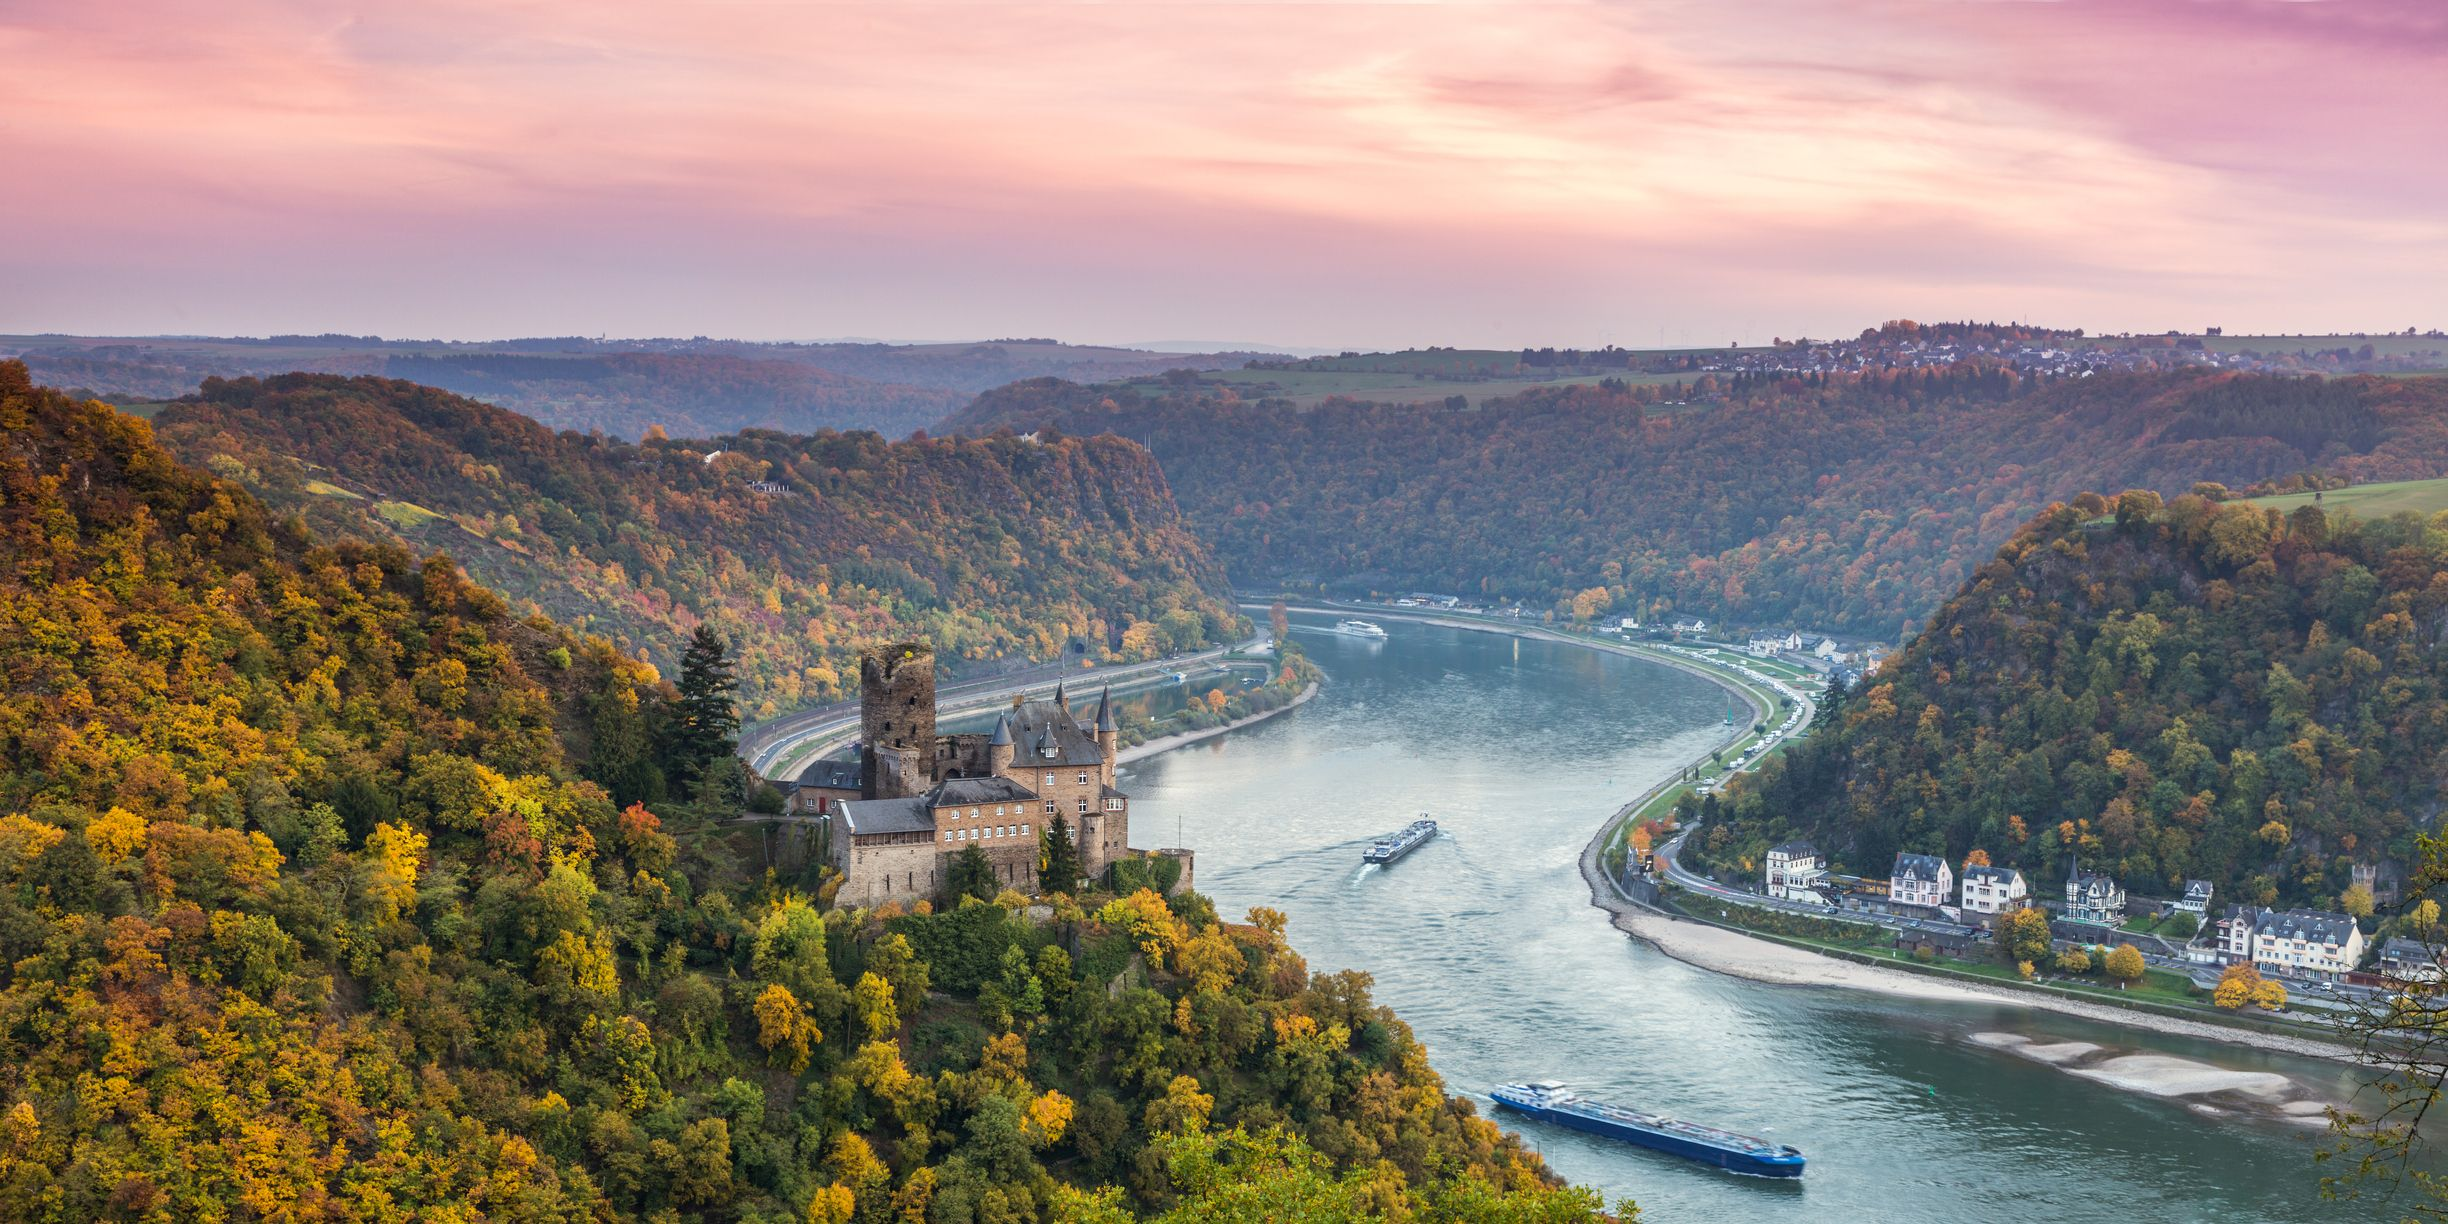 Rhine River: 10 unmissable sights to explore